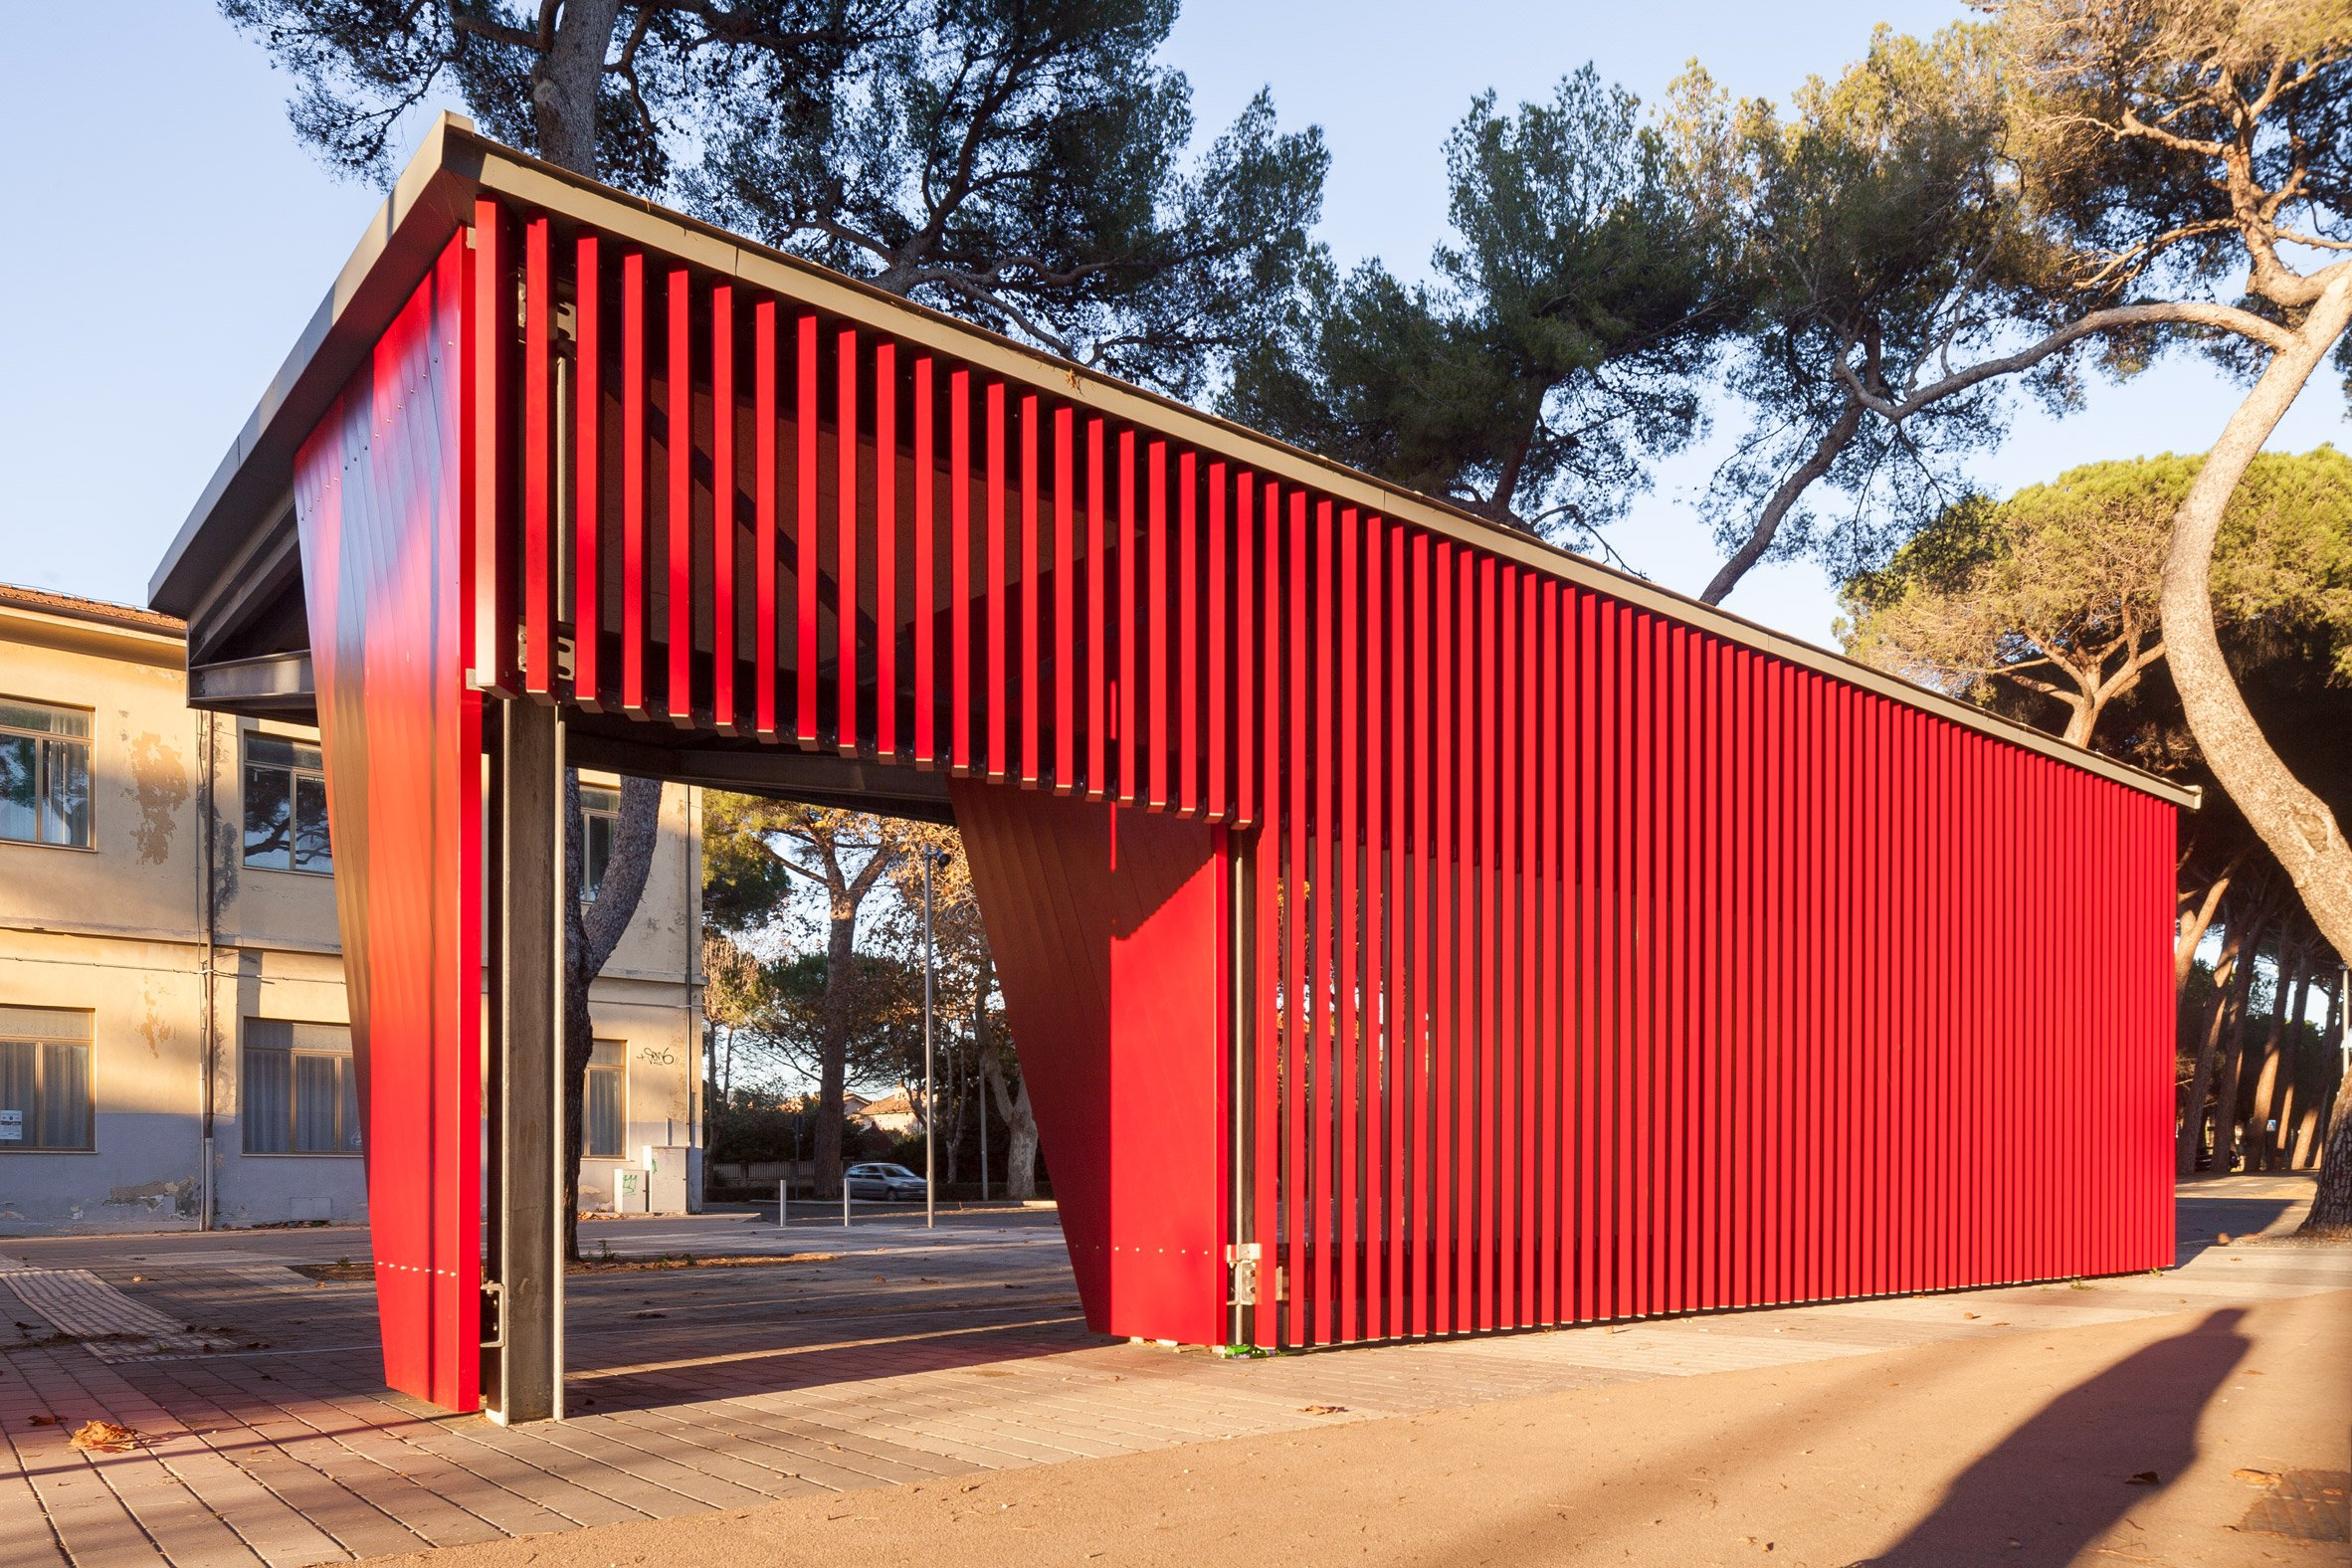 A red bus stop made from aluminium slats